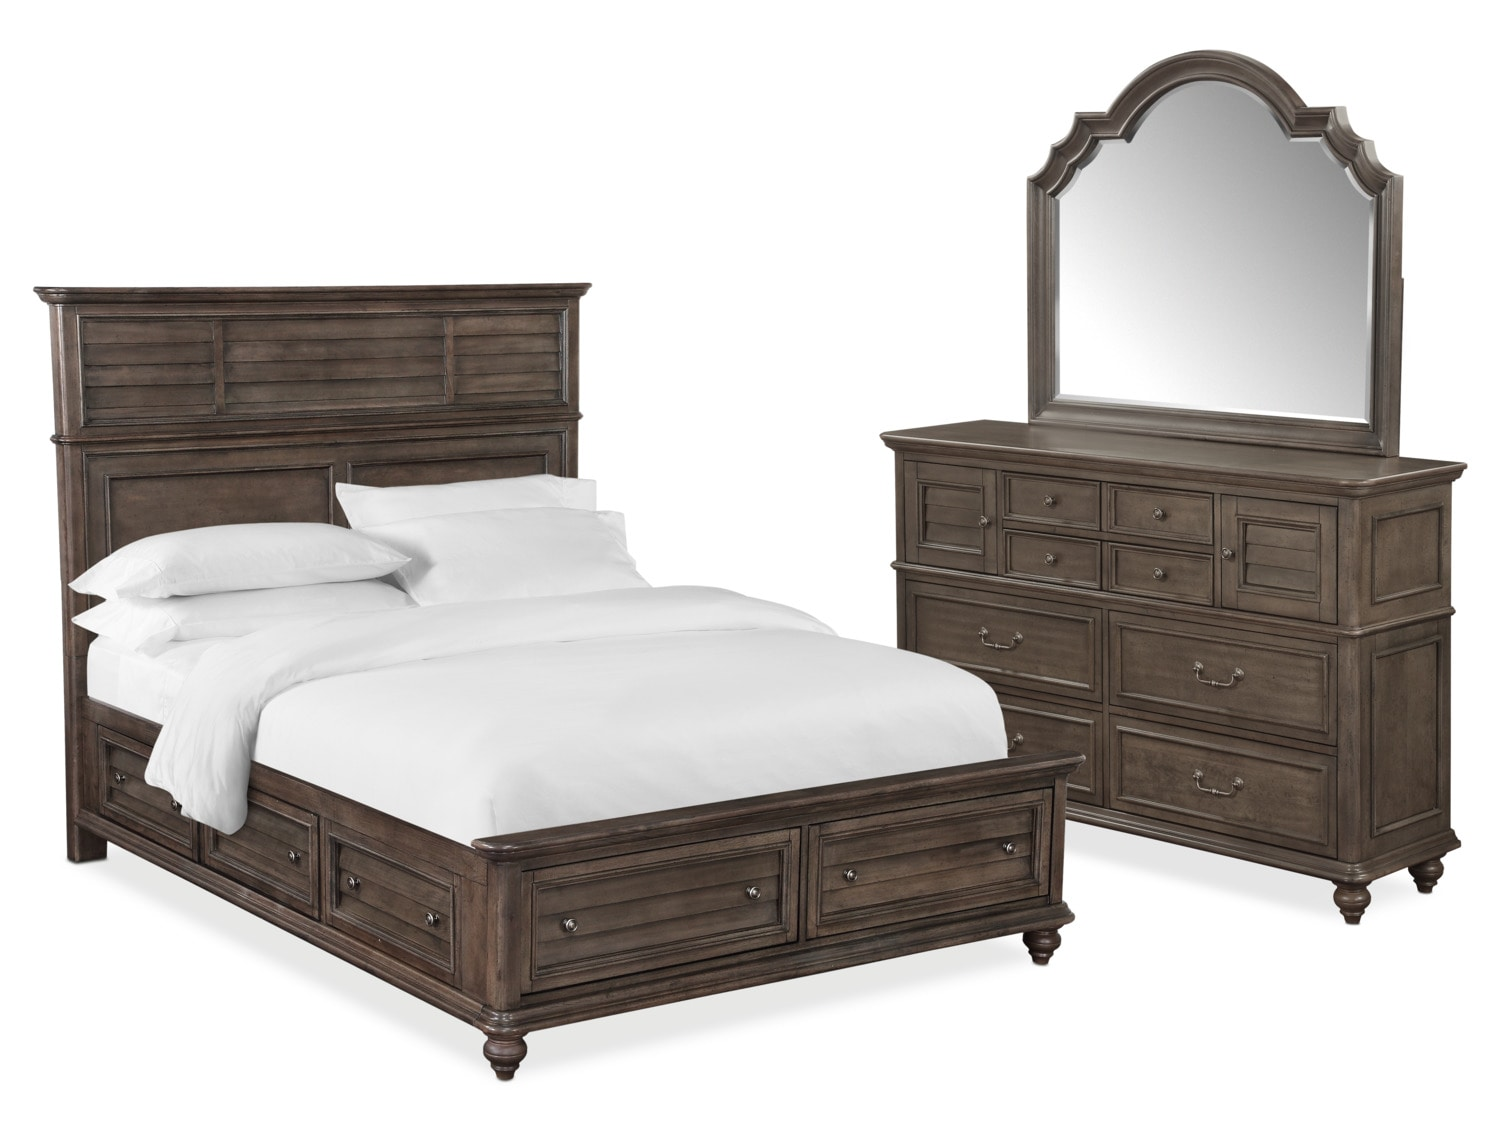 Bedroom Furniture - Charleston 5-Piece Panel Bedroom Set with 6 Underbed Drawers, Dresser and Mirror